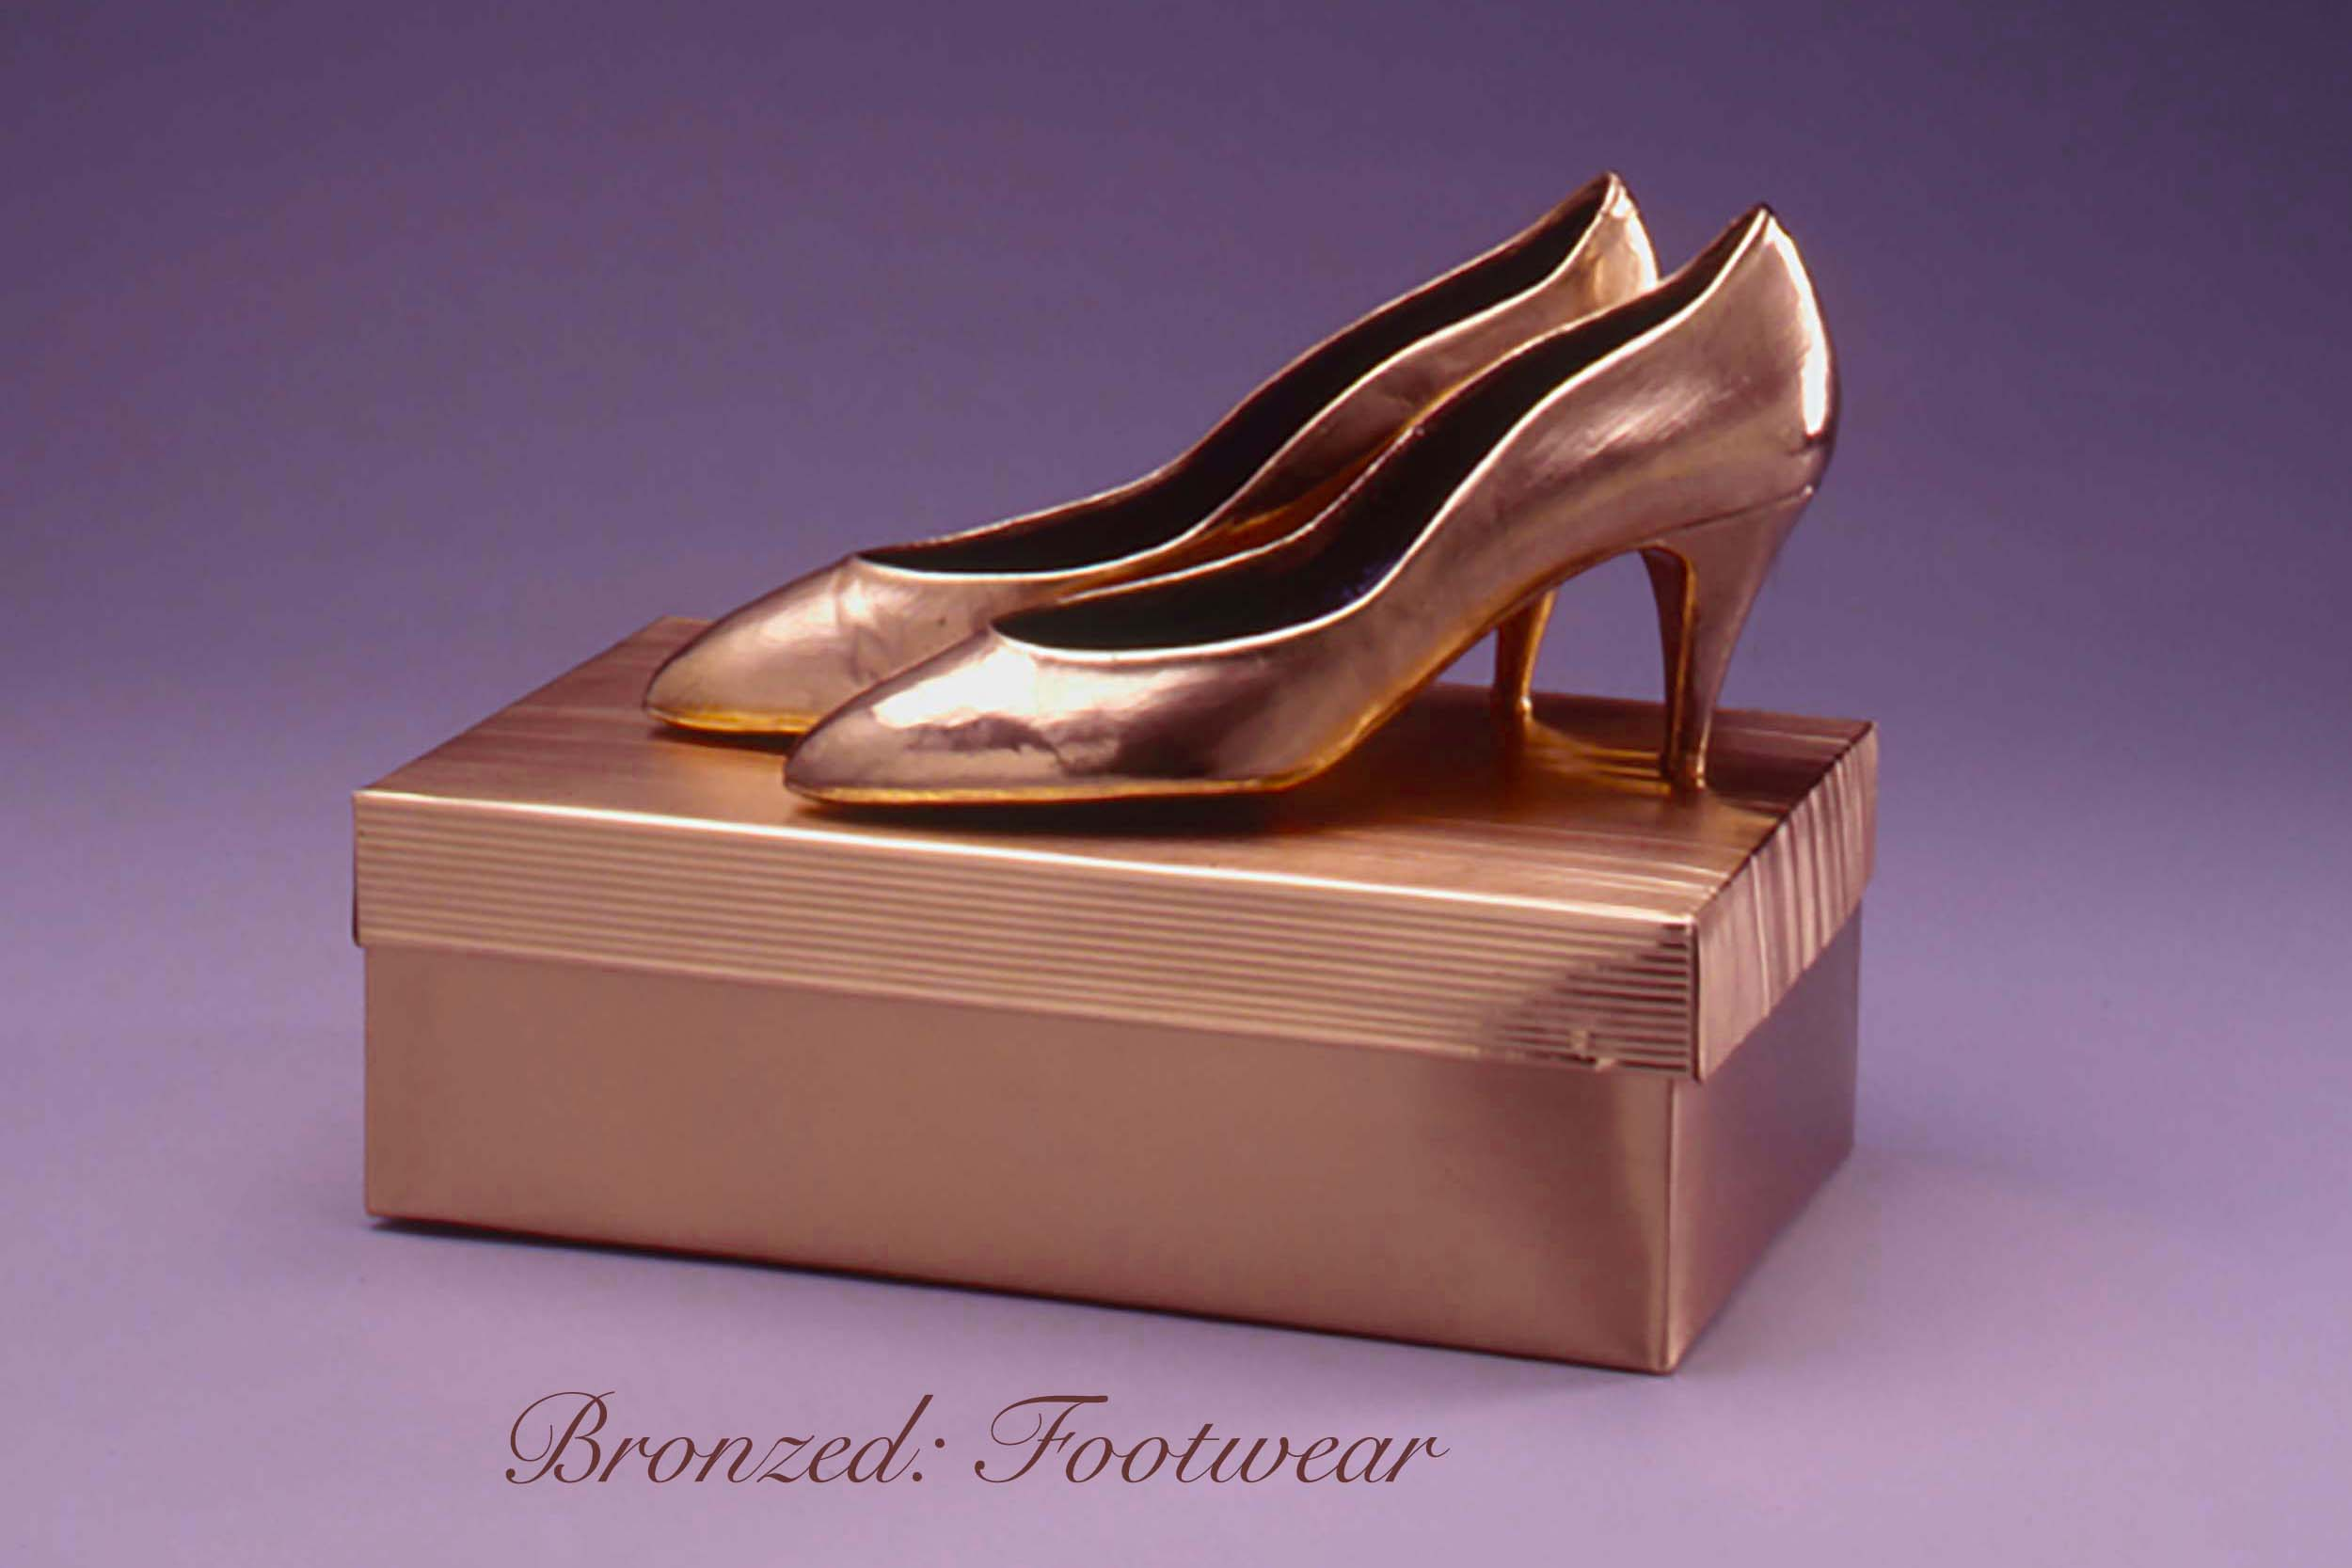 Bronzed-Footware-ps-txt.jpg